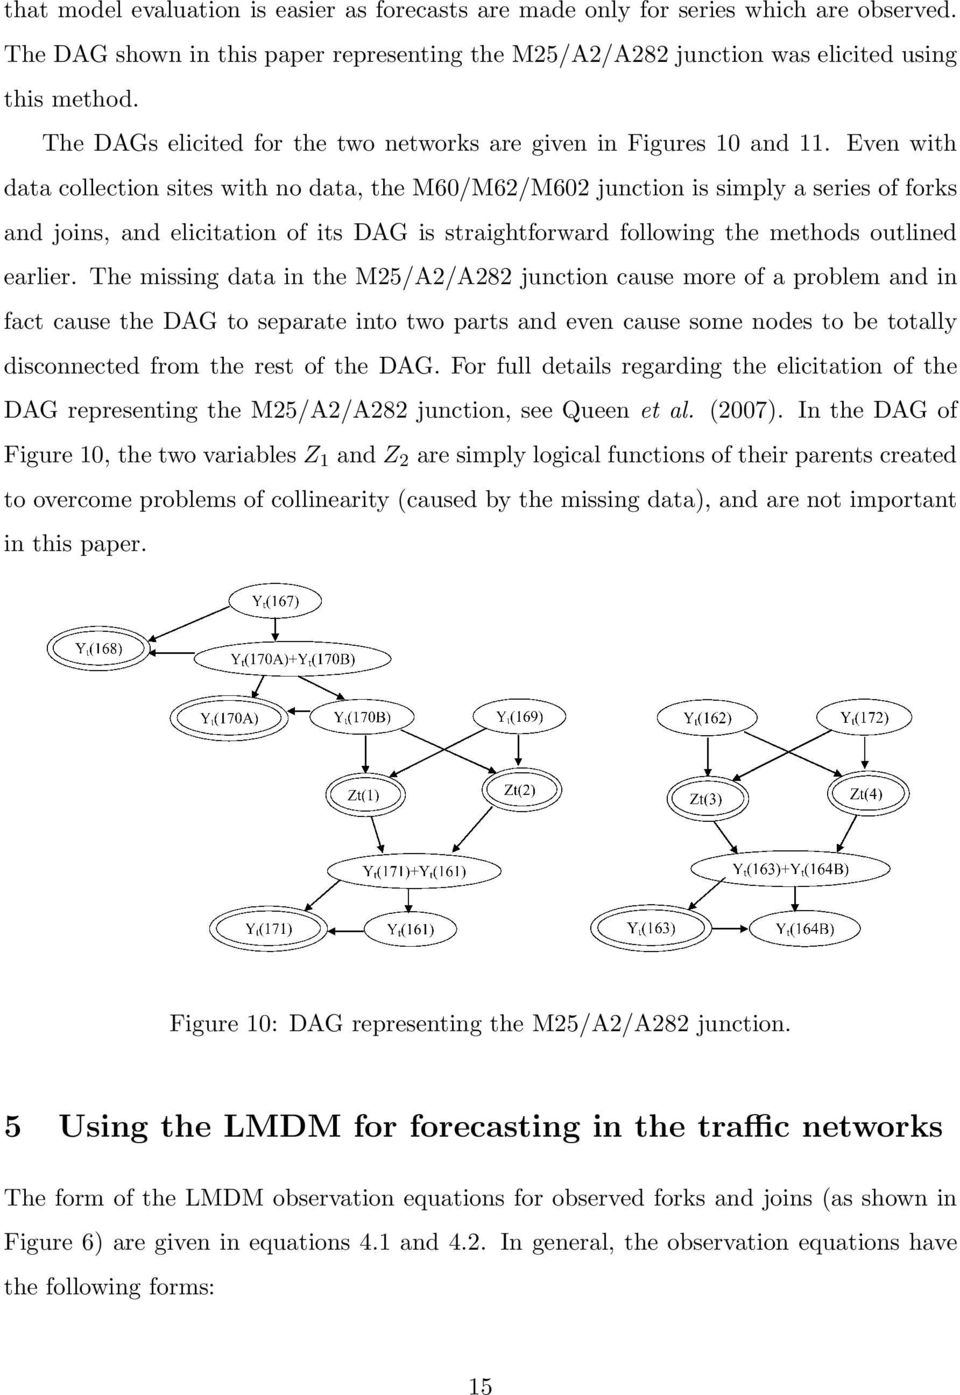 Even with data collection sites with no data, the M60/M62/M602 junction is simply a series of forks and joins, and elicitation of its DAG is straightforward following the methods outlined earlier.